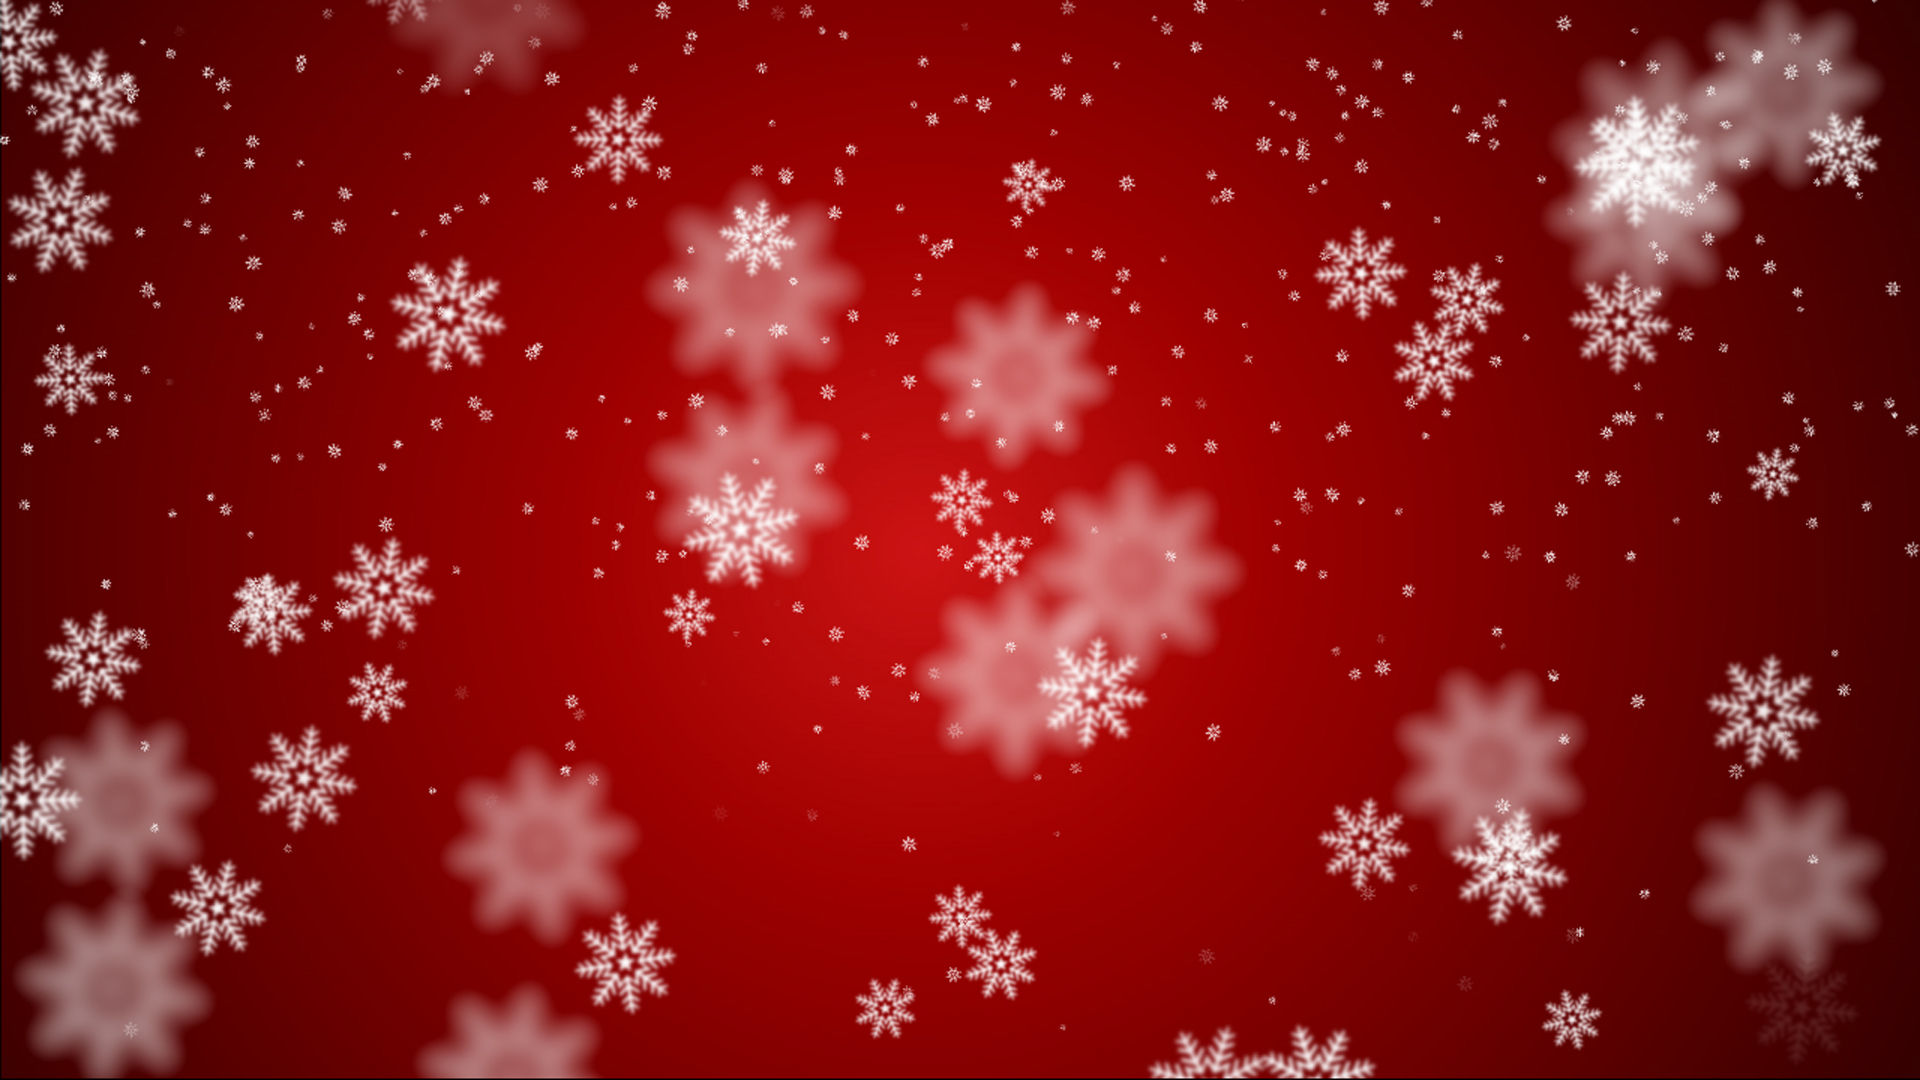 Xmas Background